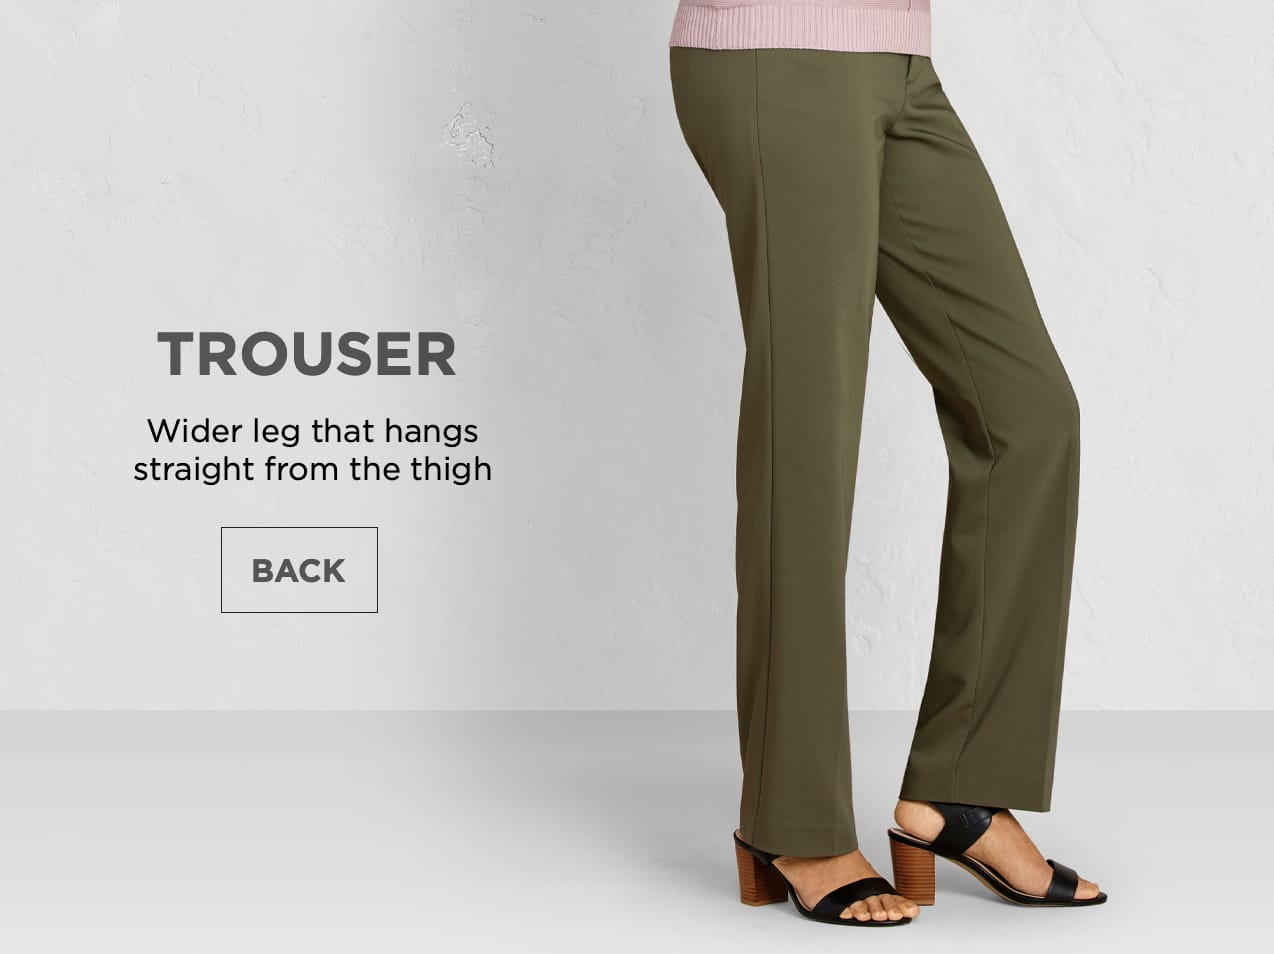 Trouser: Wider leg that hangs straight from the thigh.